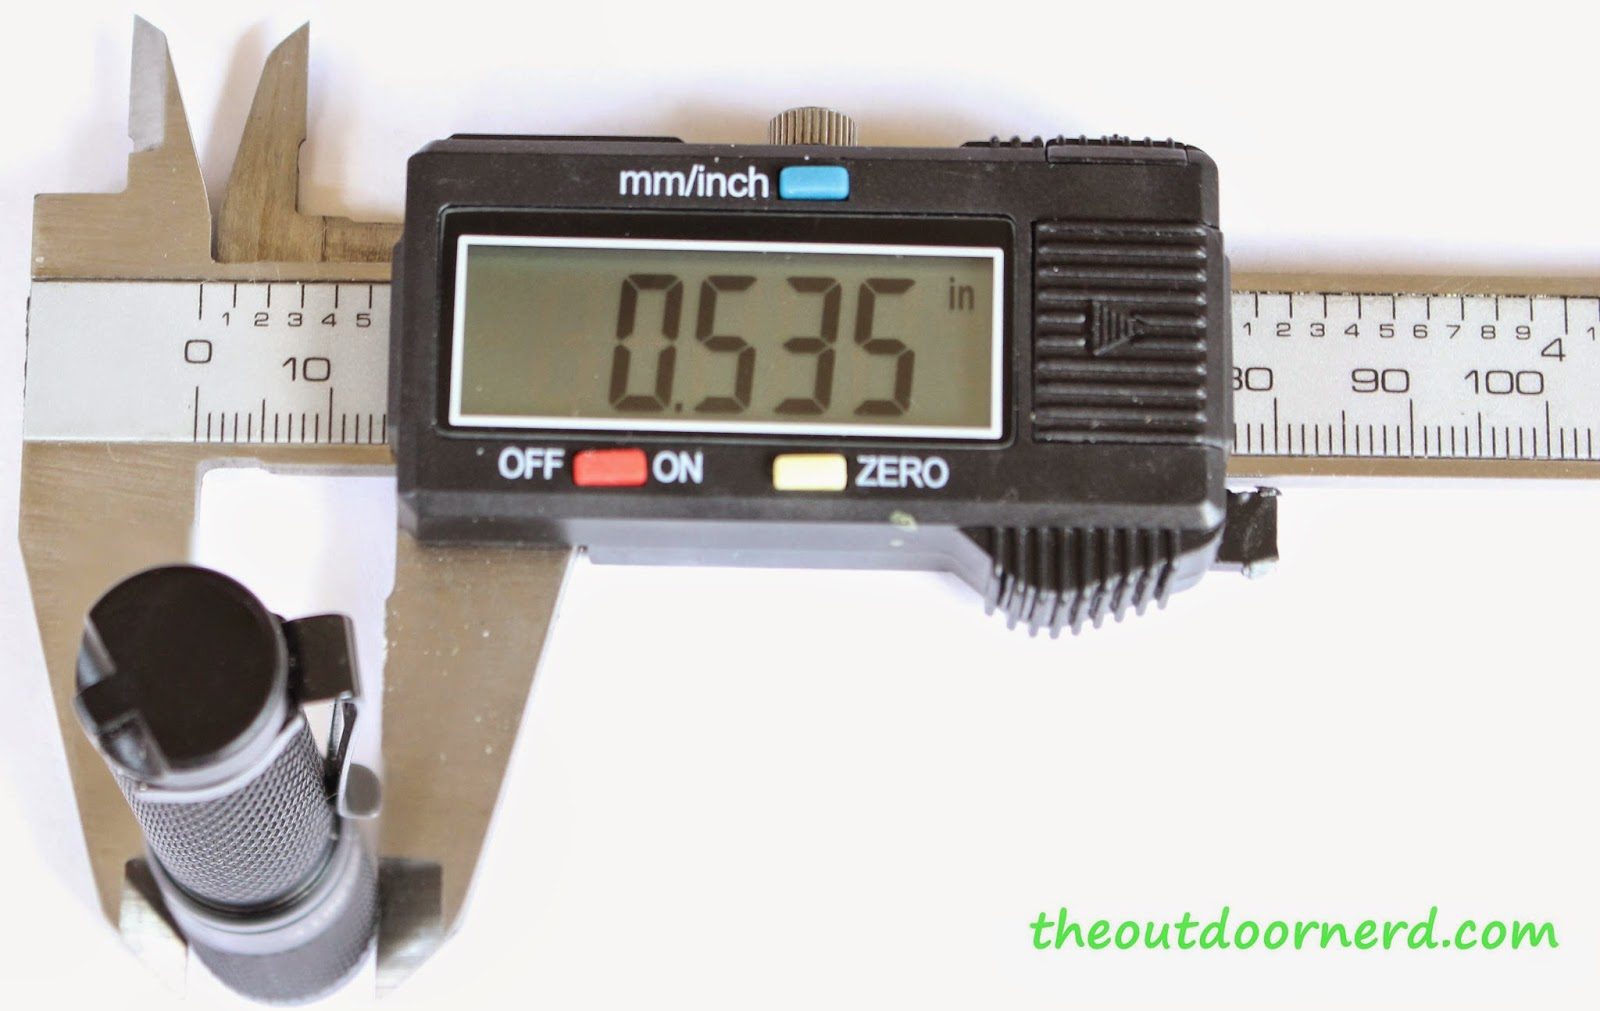 Thrunite Ti3 1xAAA EDC Flashlight: Caliper Measurement 2